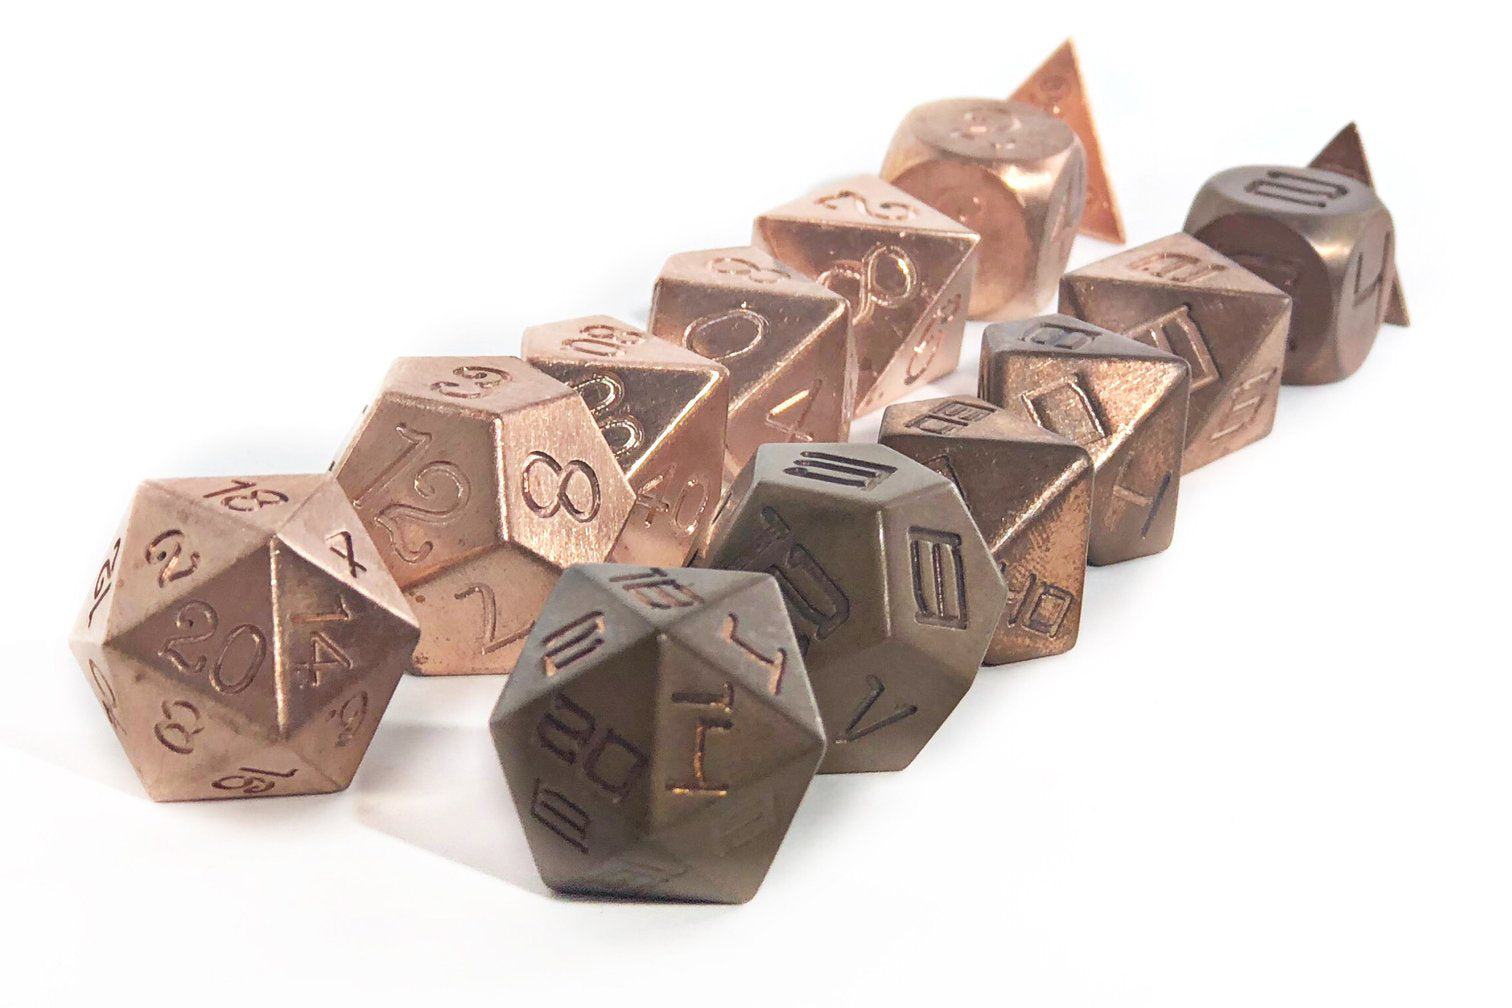 Copper dice set, new and tarnished